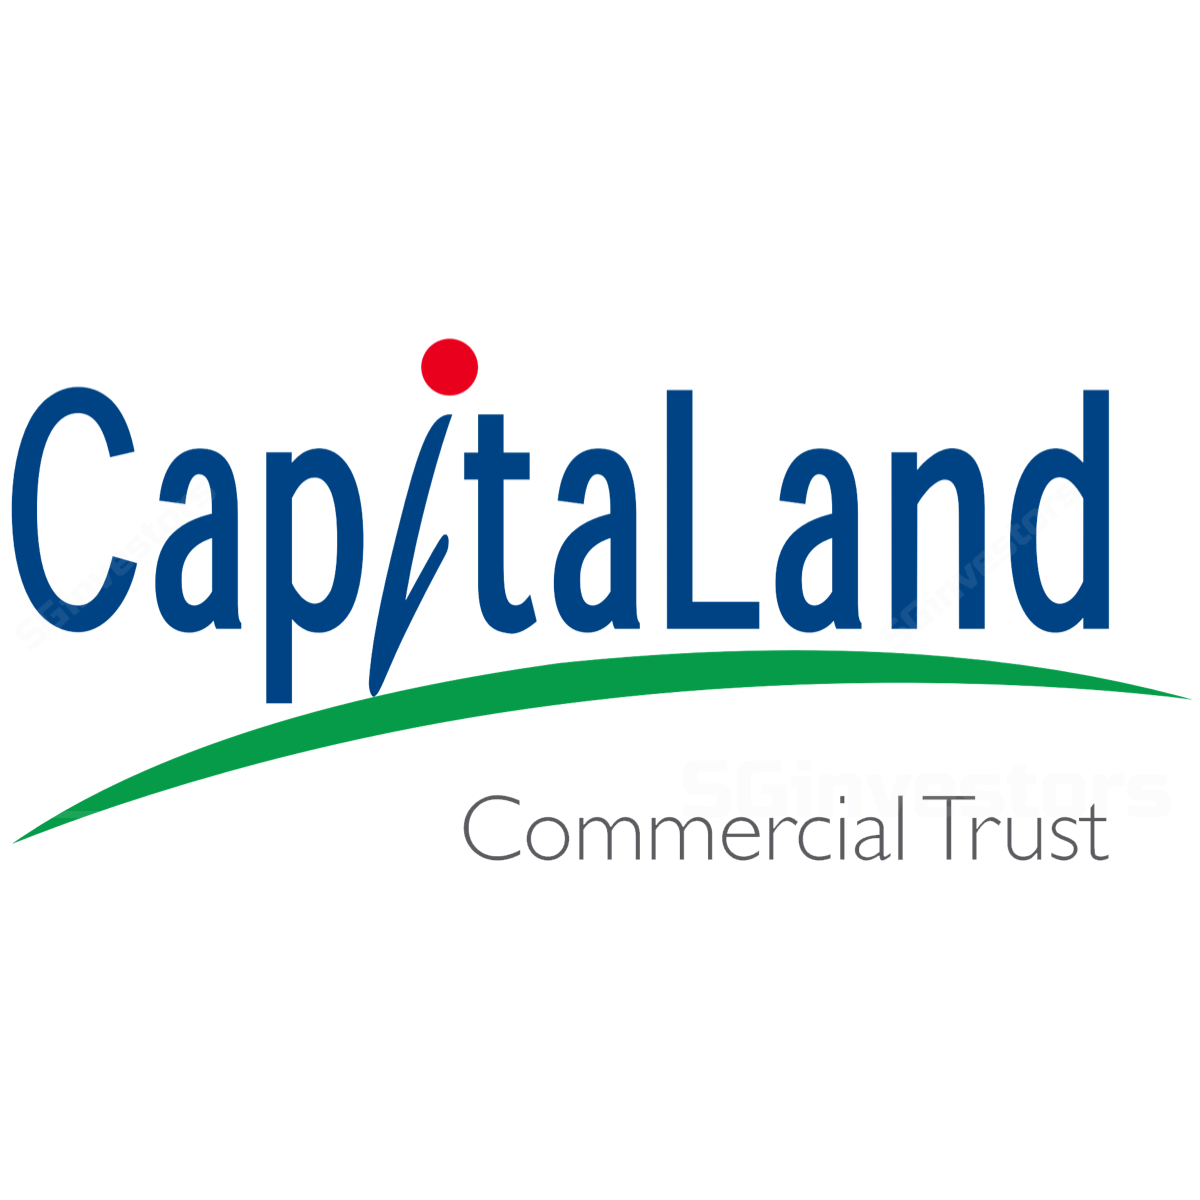 CapitaLand Commercial Trust - RHB Invest 2017-05-03: Divests 50% stake in One George Street at 17% premium to book value